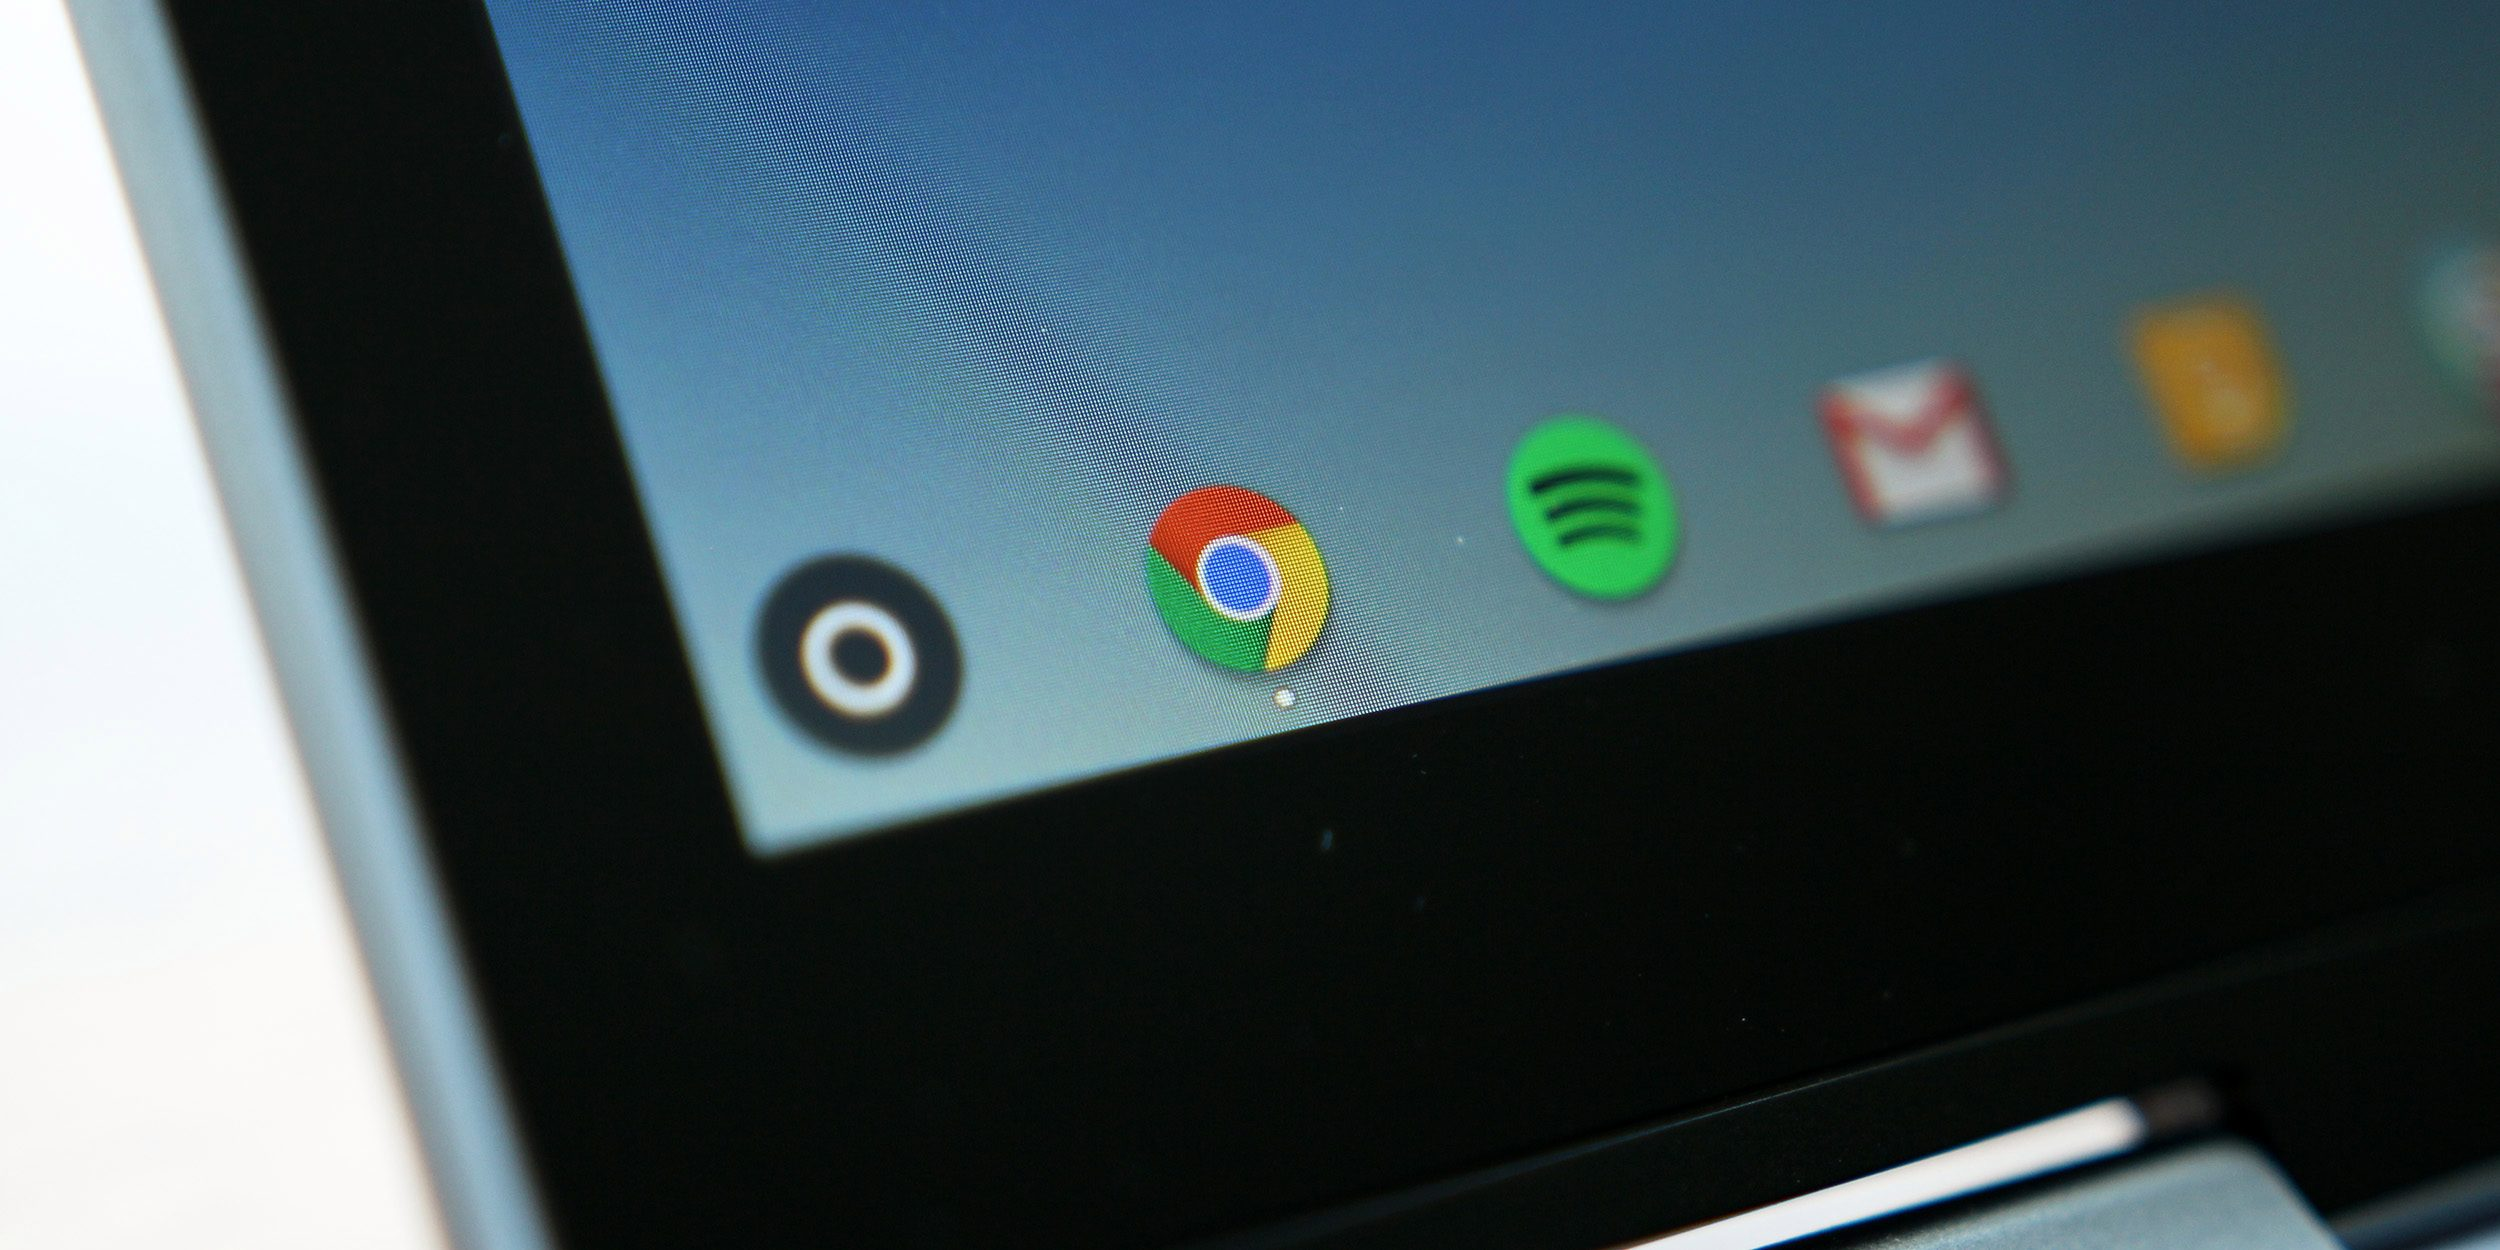 Googlers working on 'click-to-call' functionality between Chrome desktop and Android